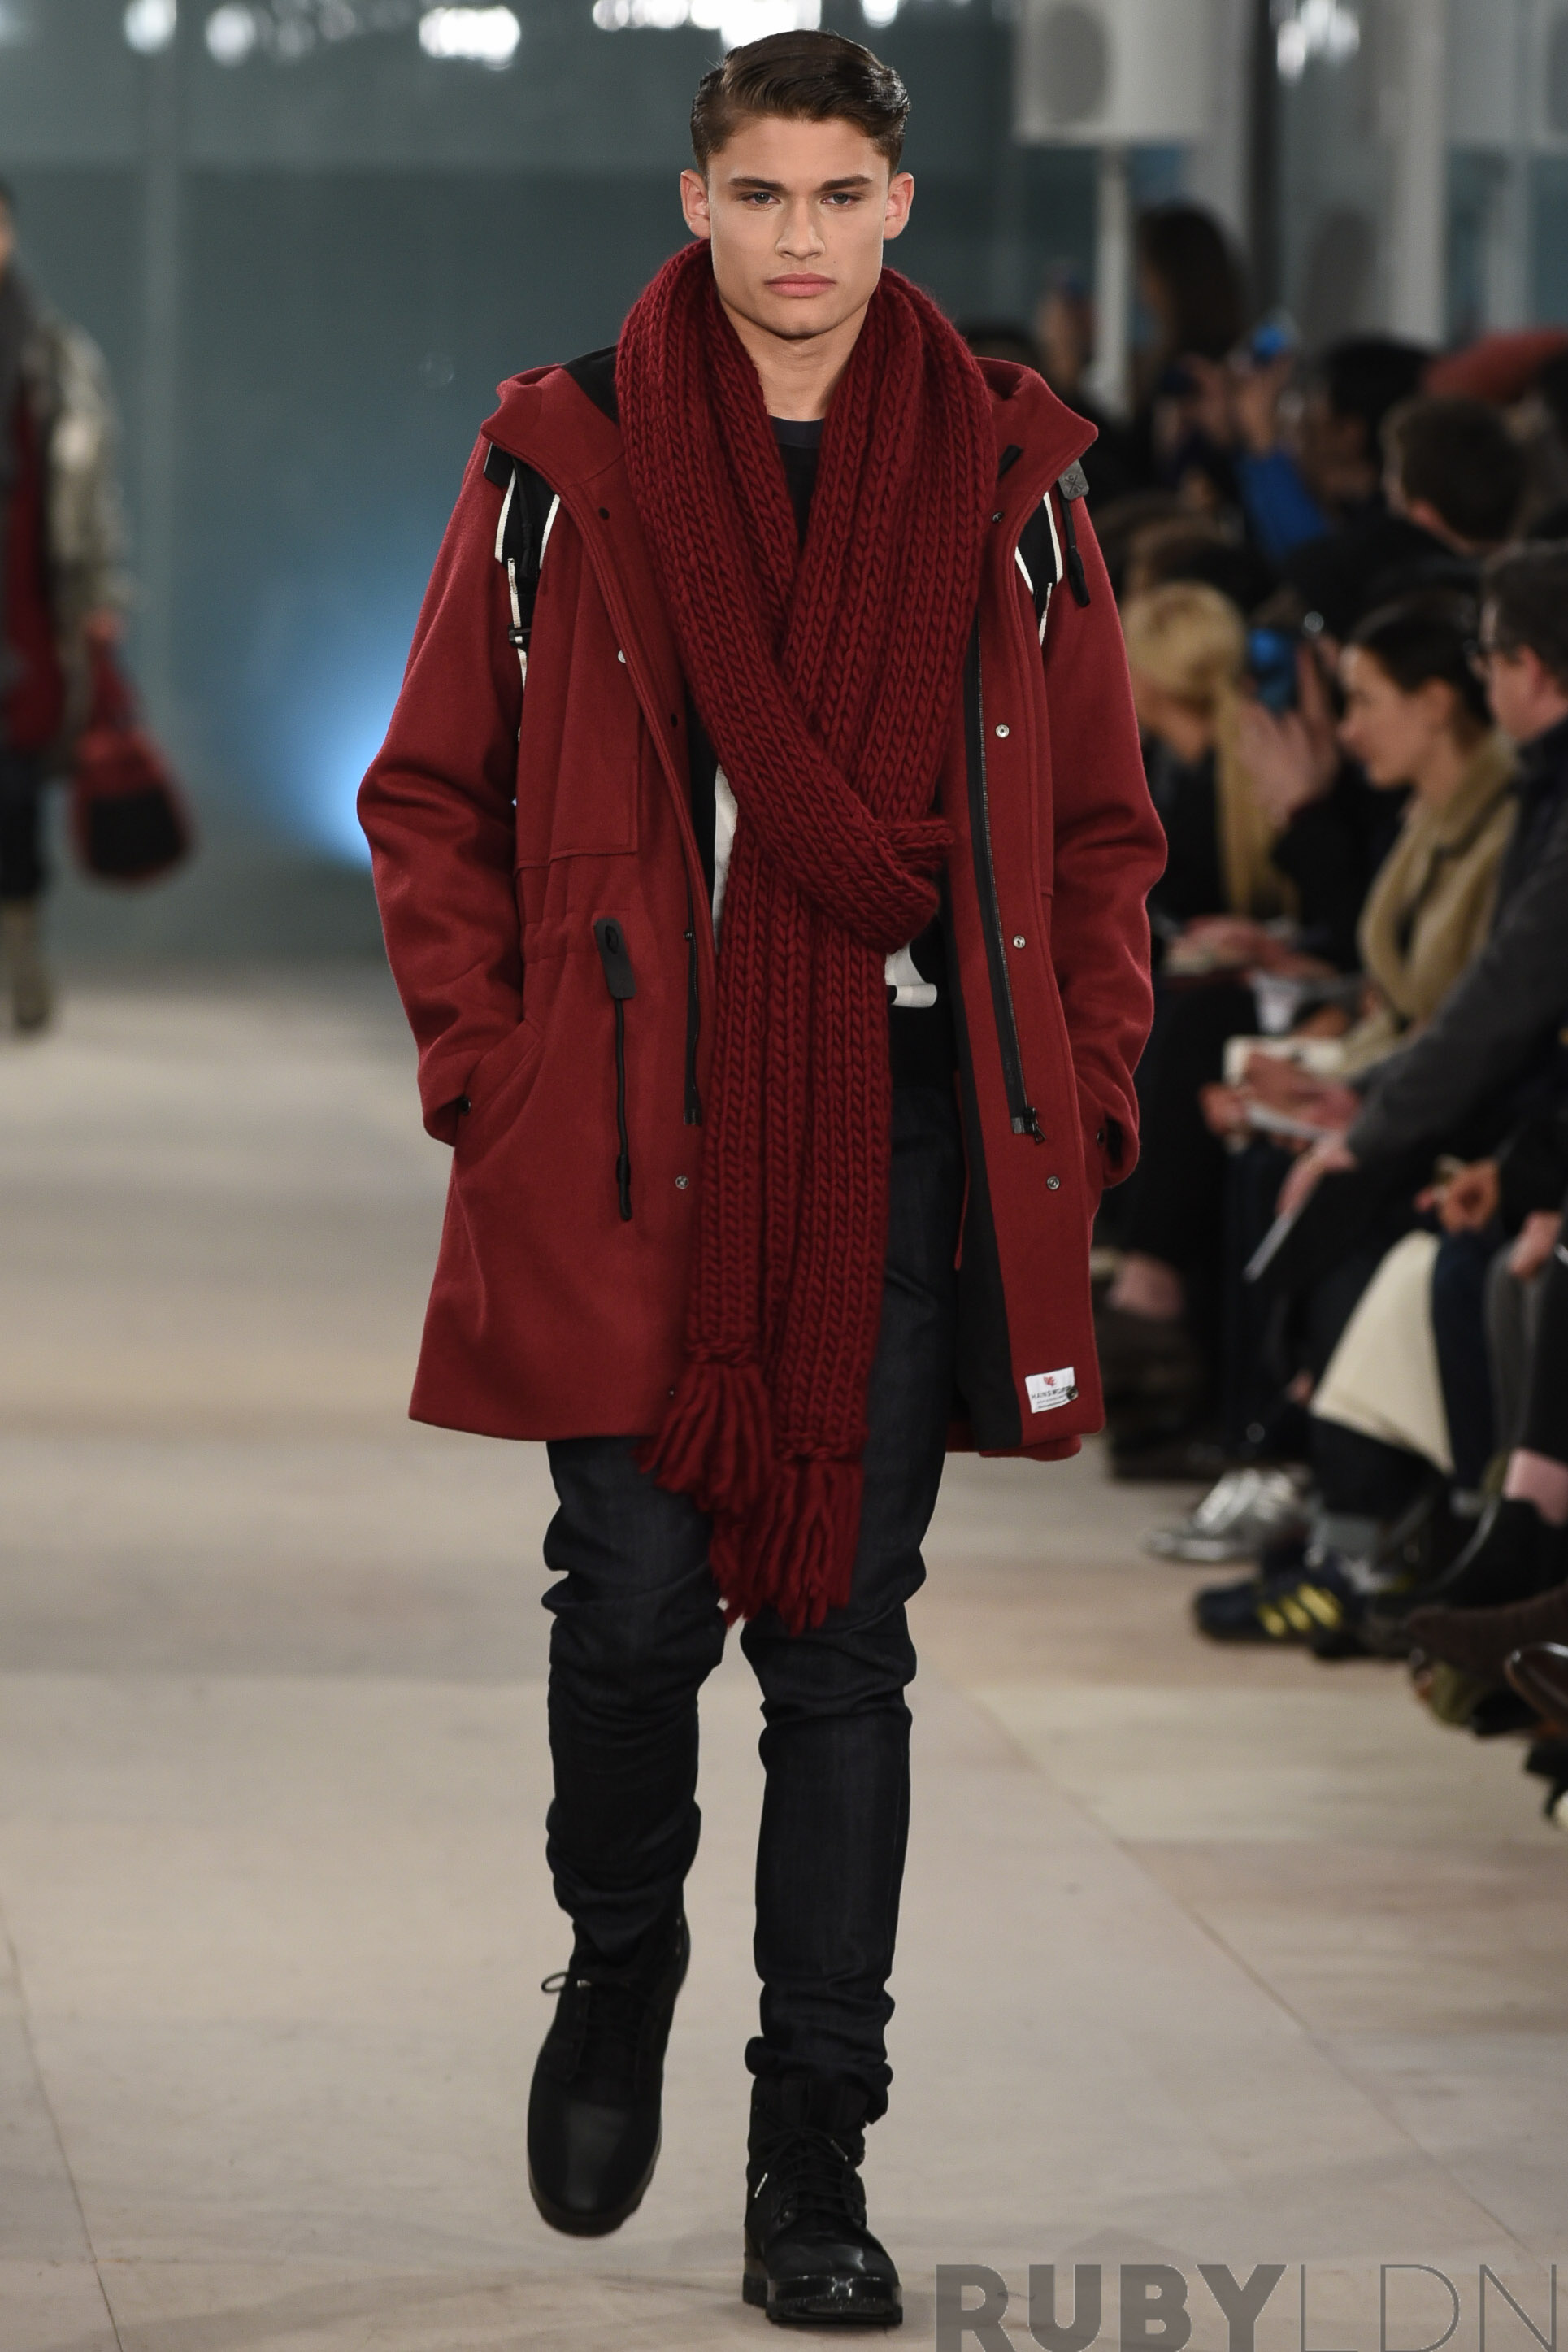 Model walks down the catwalk wearing Christopher Raeburn's Autumn/Winter '16 collection